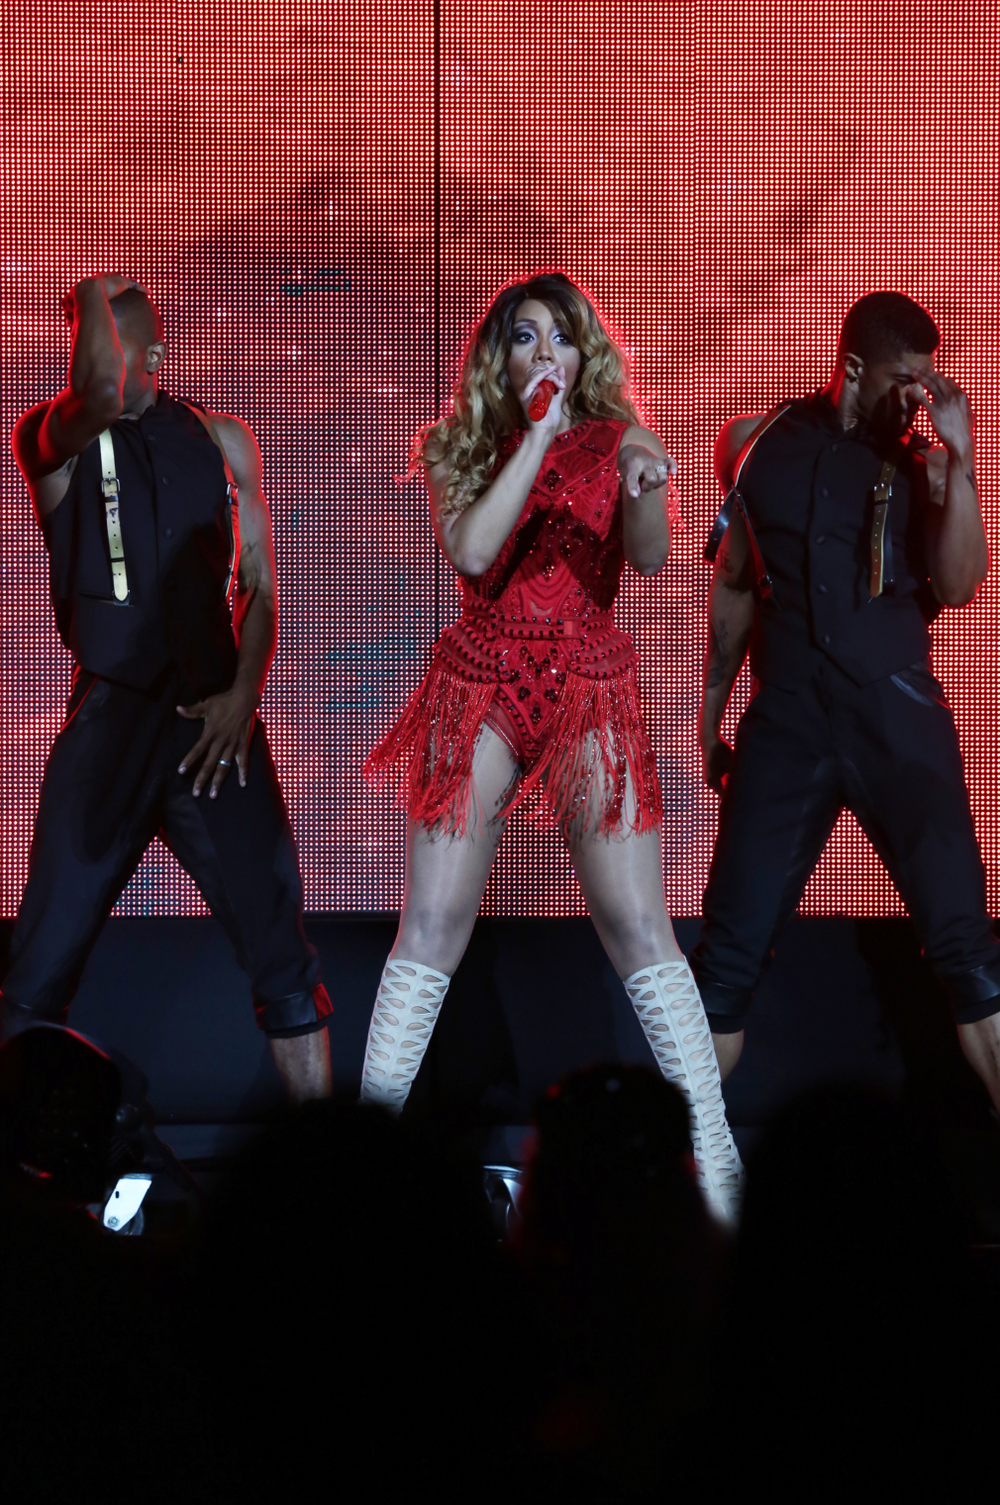 Tamar Braxton In Concert Photographed By Alex Jackson